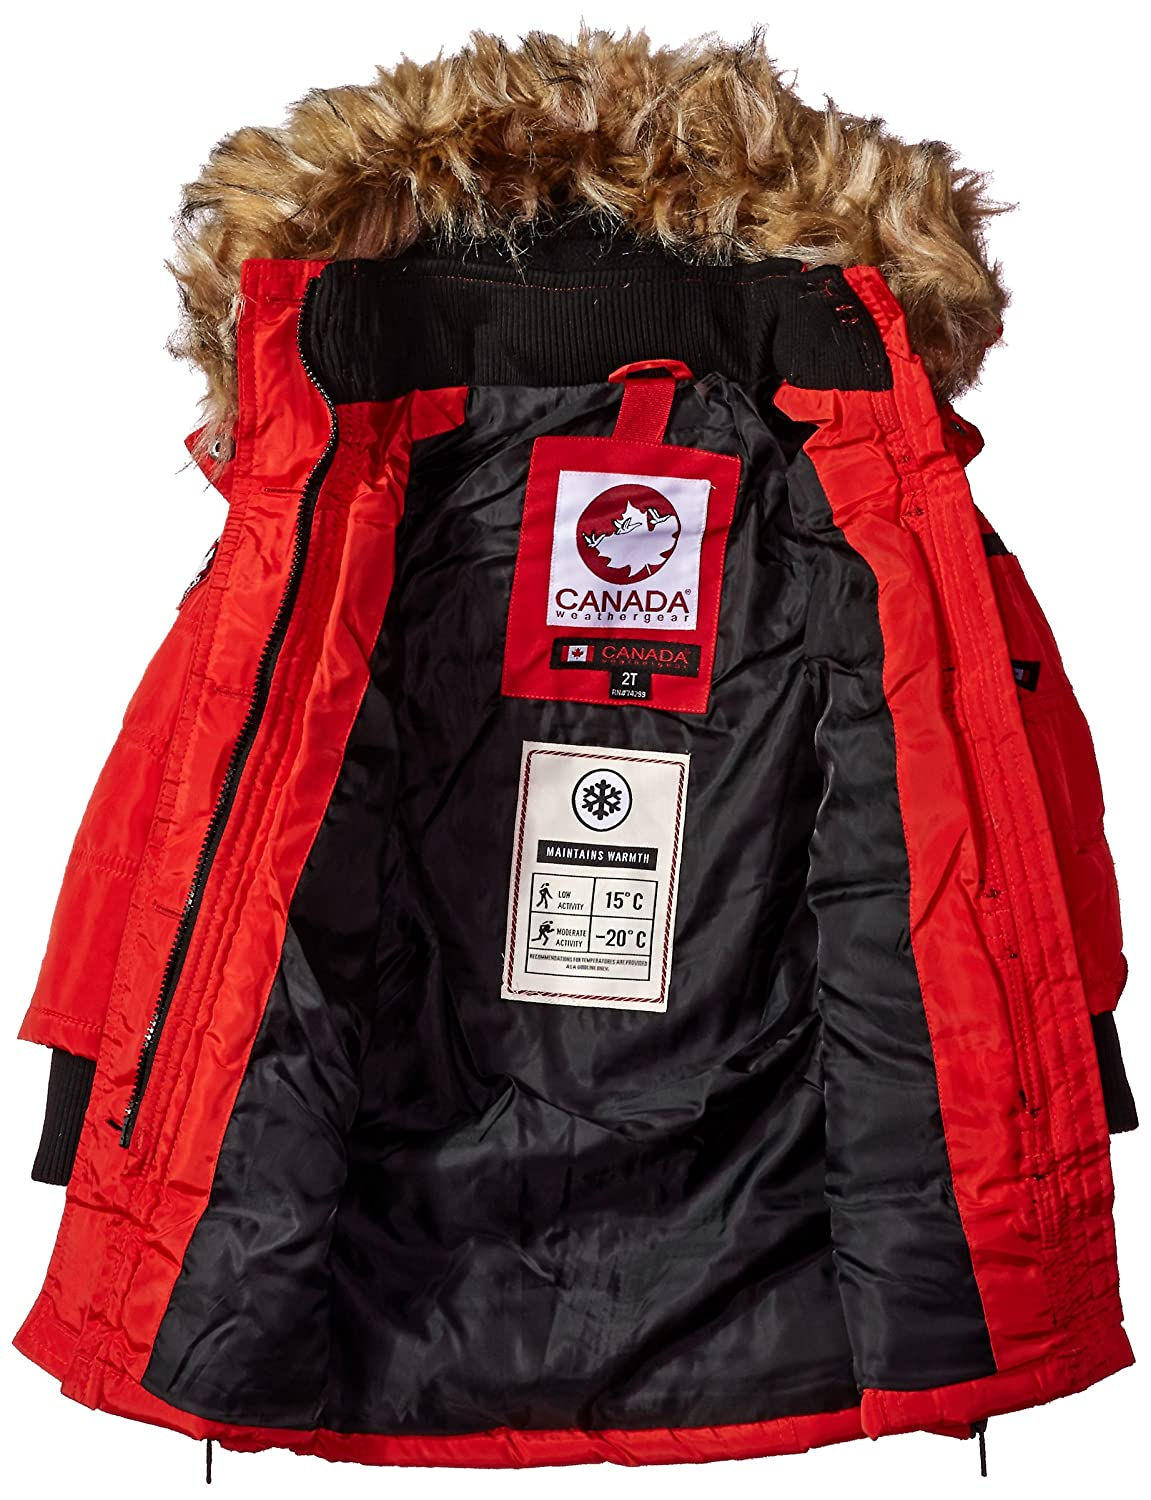 CANADA WEATHER GEAR Girls Toddler Outerwear Jacket More Styles Available